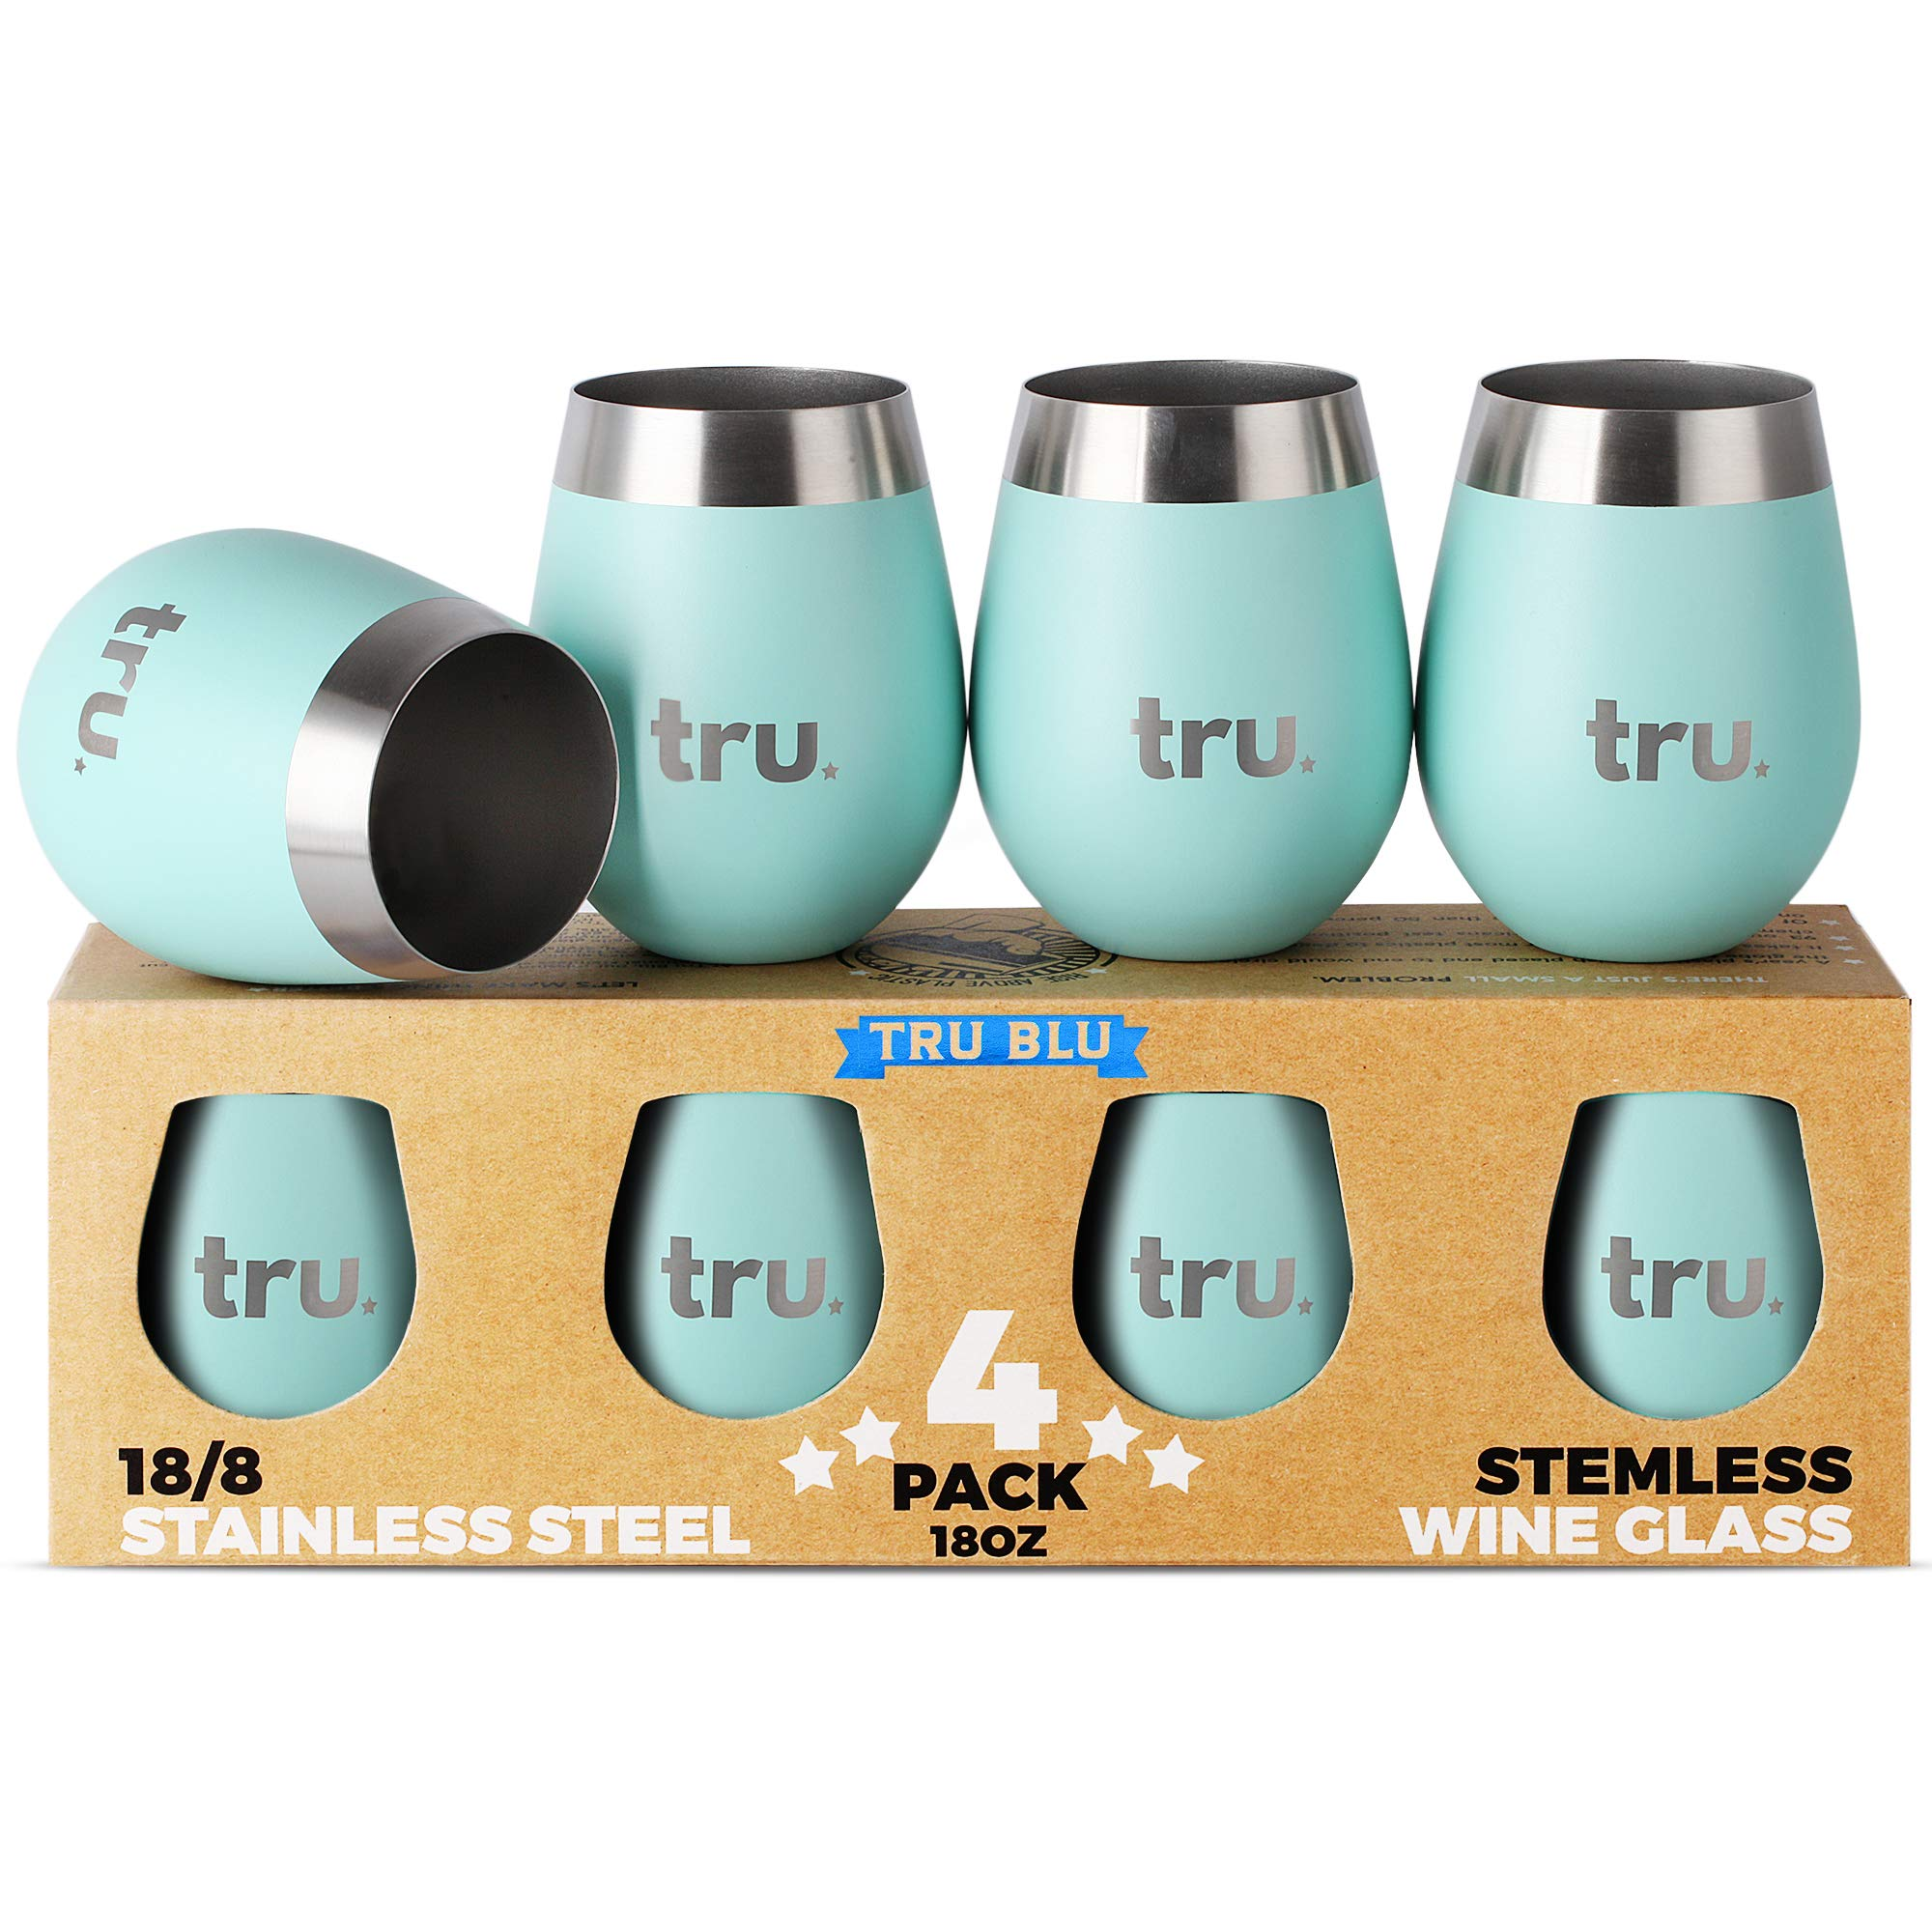 Outdoor Wine Glasses (Set of 4) - Stainless Steel Wine Tumblers 18oz – Stemless Metal Cup for Camping - Travel, Lightweight, Unbreakable, Shatterproof, Portable, BPA Free